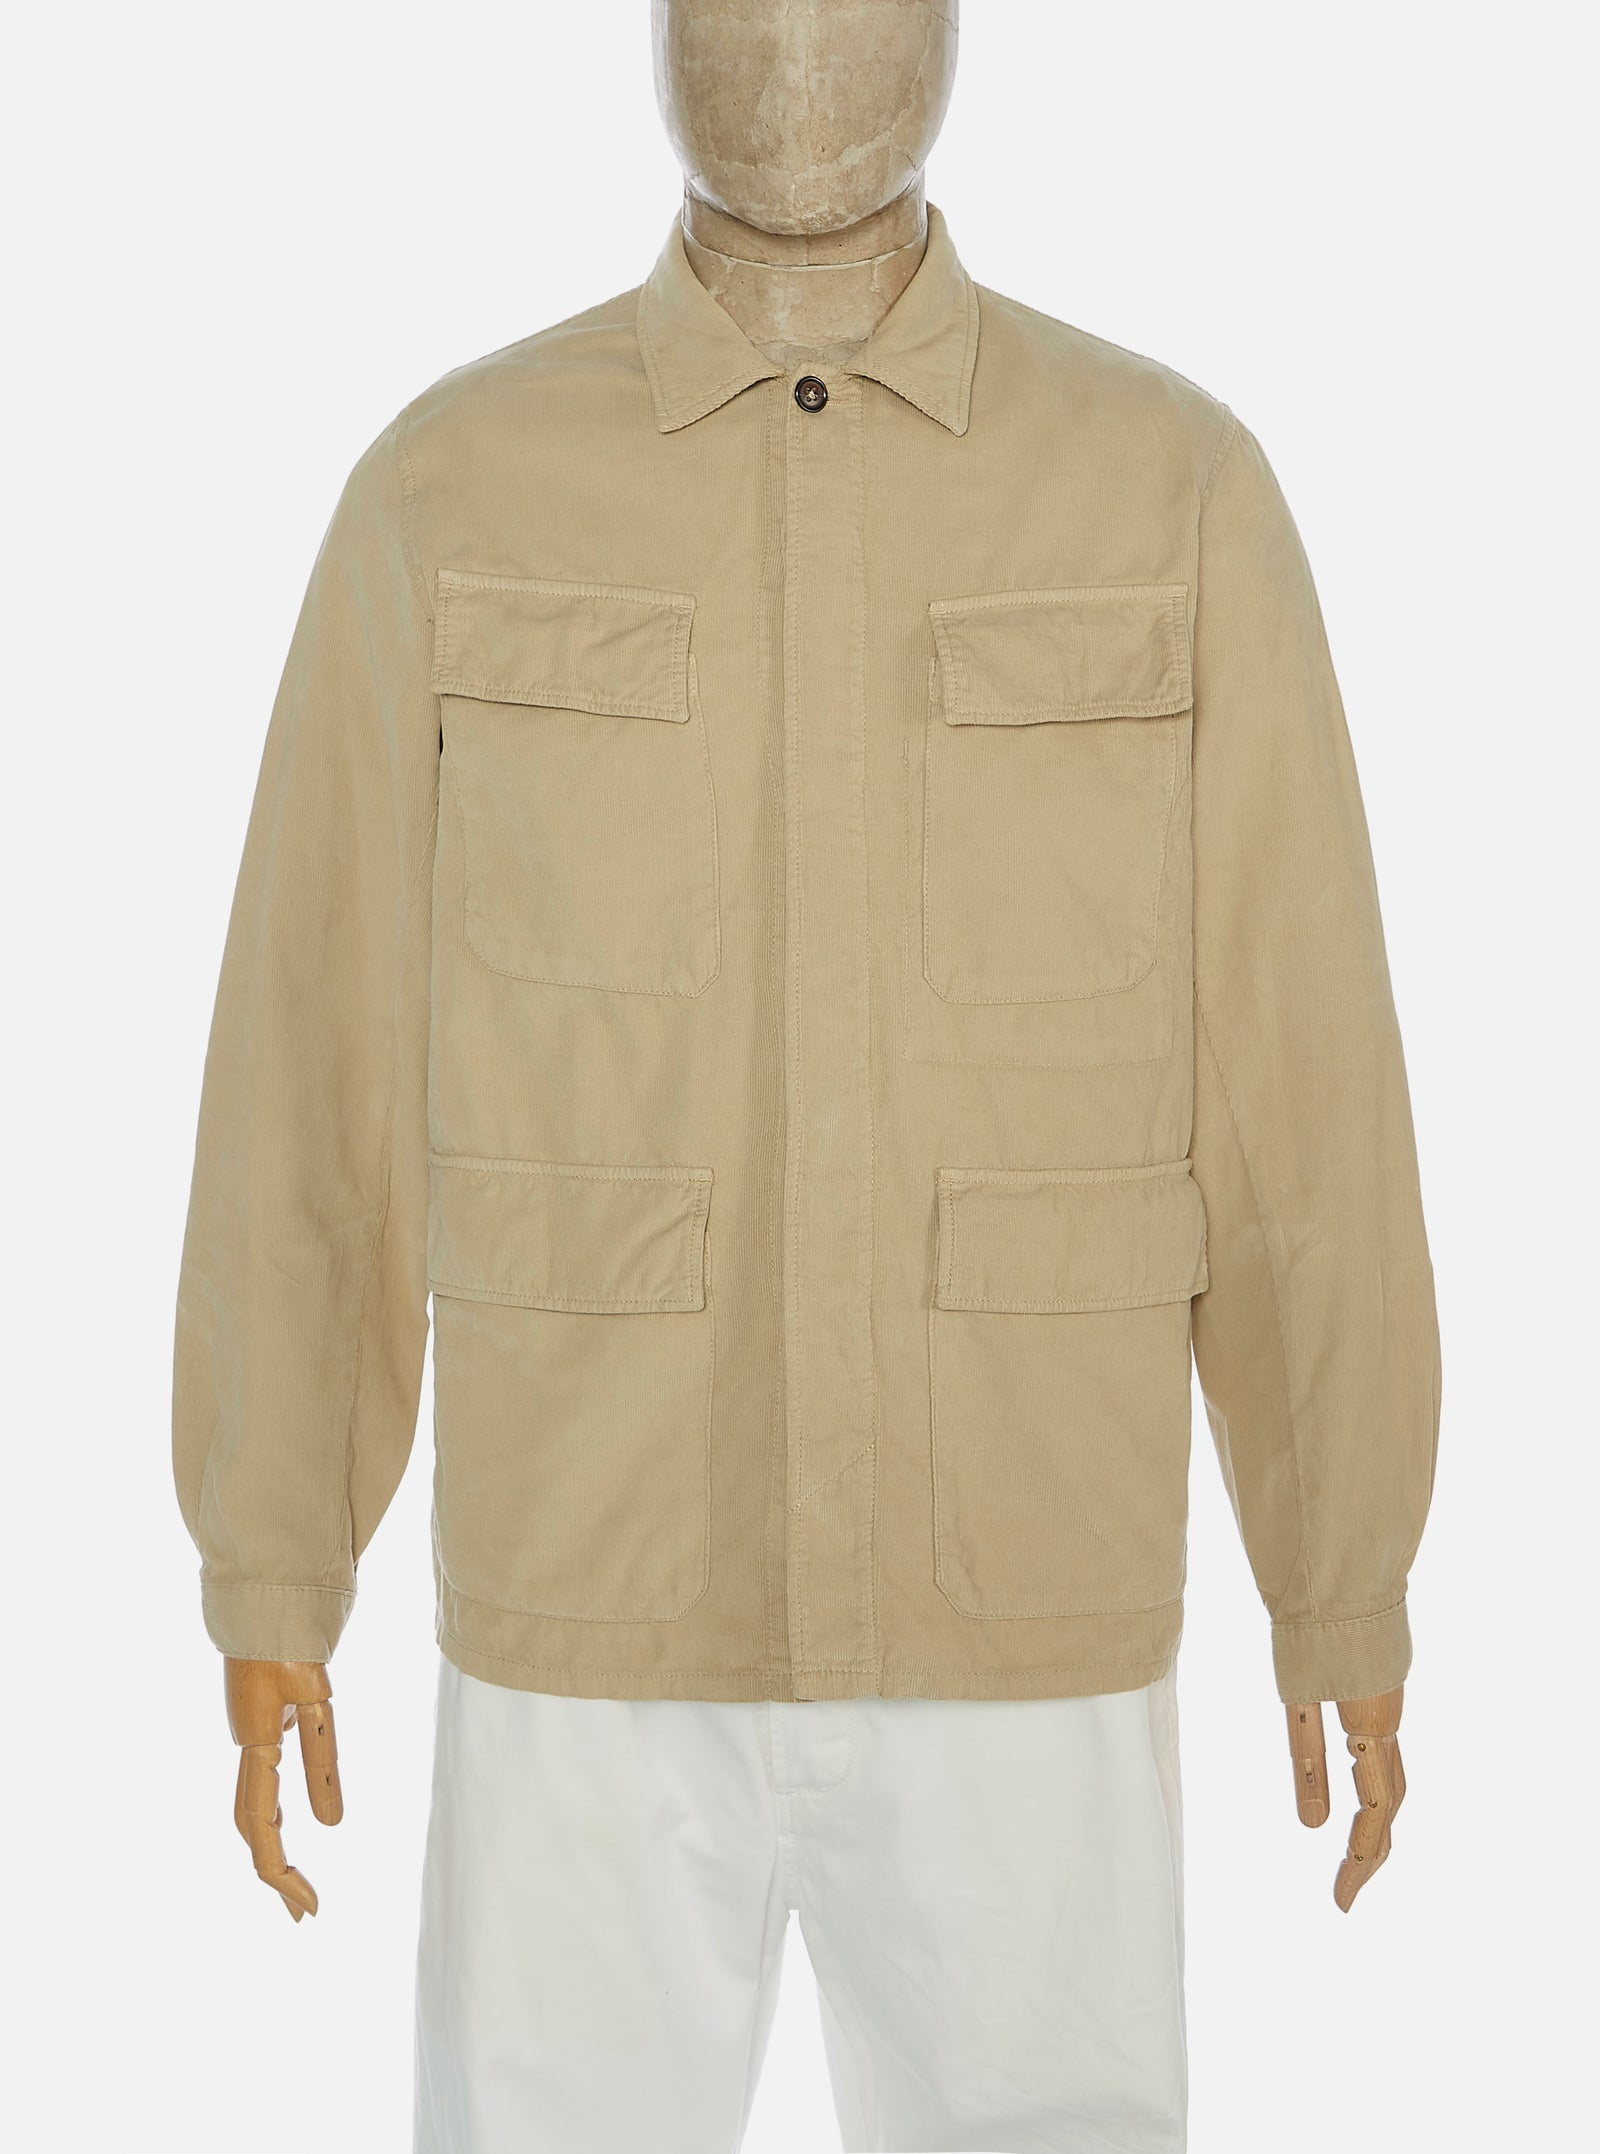 Universal Works MW Fatigue Jacket in Stone Needle Cord